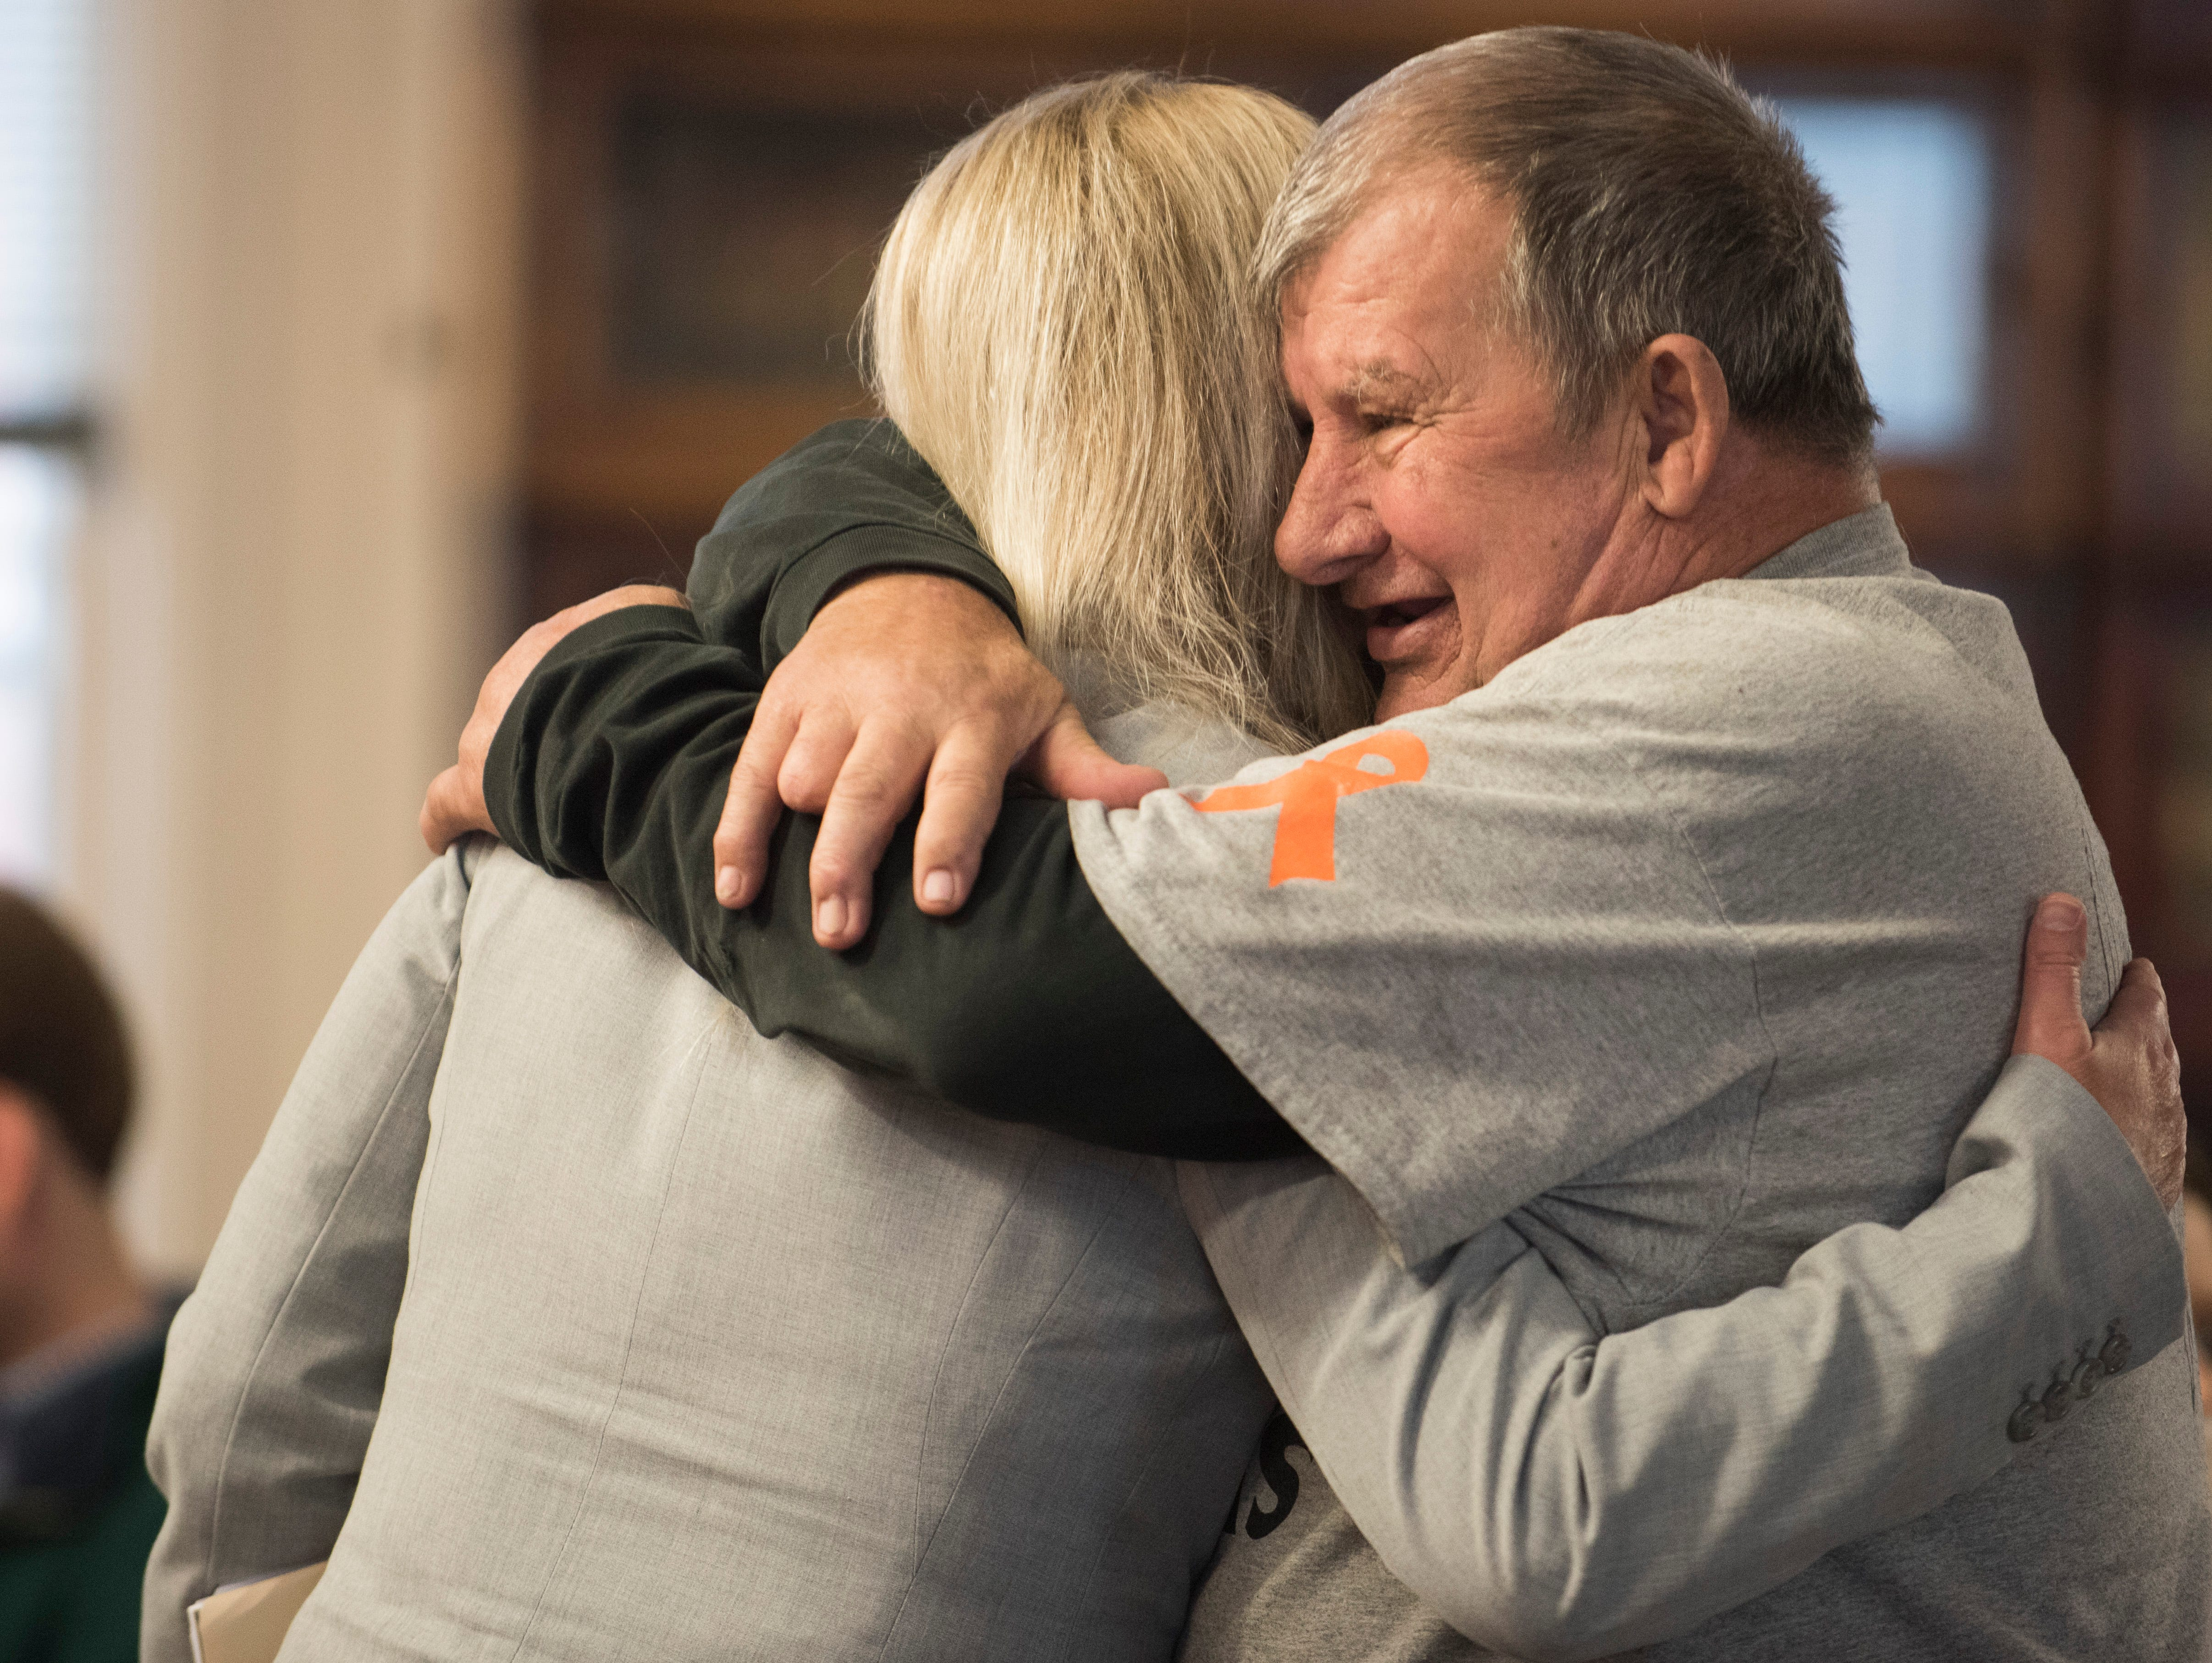 "Leonard Manley, father of Dana Manley Rhoden, hugs Special Prosecutor Angie Canepa before the arraignment of Angela Wagner at the Pike County Courthouse on Thursday, November 29, 2018 in Waverly, Ohio. Angela Wagner is facing murder chargers, along with her husband George ""Billy"" Wagner III and sons Edward ""Jake"" Wagner and George Wagner IV, relating to the deaths of seven Rhoden family members and Hannah Gilley over a possible custody dispute. The eight homicides took place in April of 2016 at four different homes, all around the same time, and it would spawn the largest homicide investigation in Ohio history. If convicted, all are facing the death penalty."